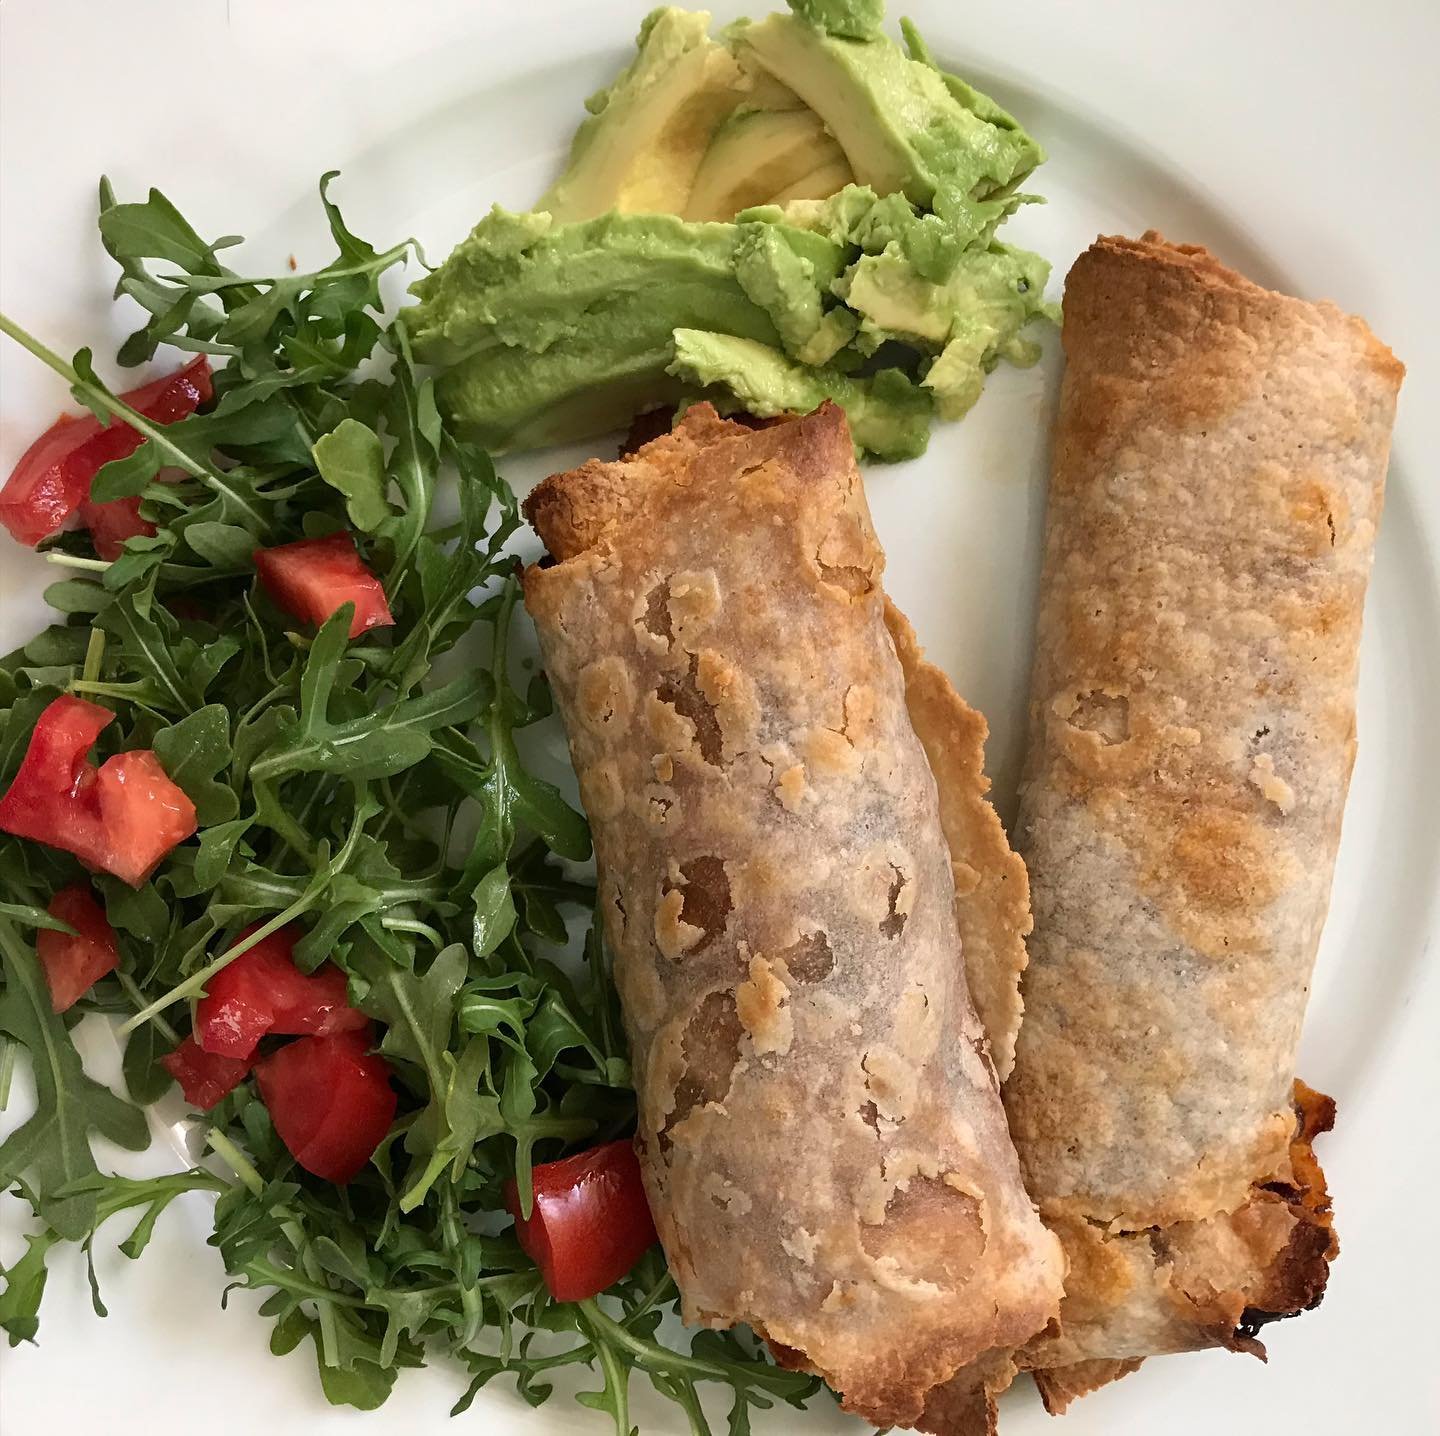 Gluten Free Taquitos with Chorizo, Black beans, and Kale